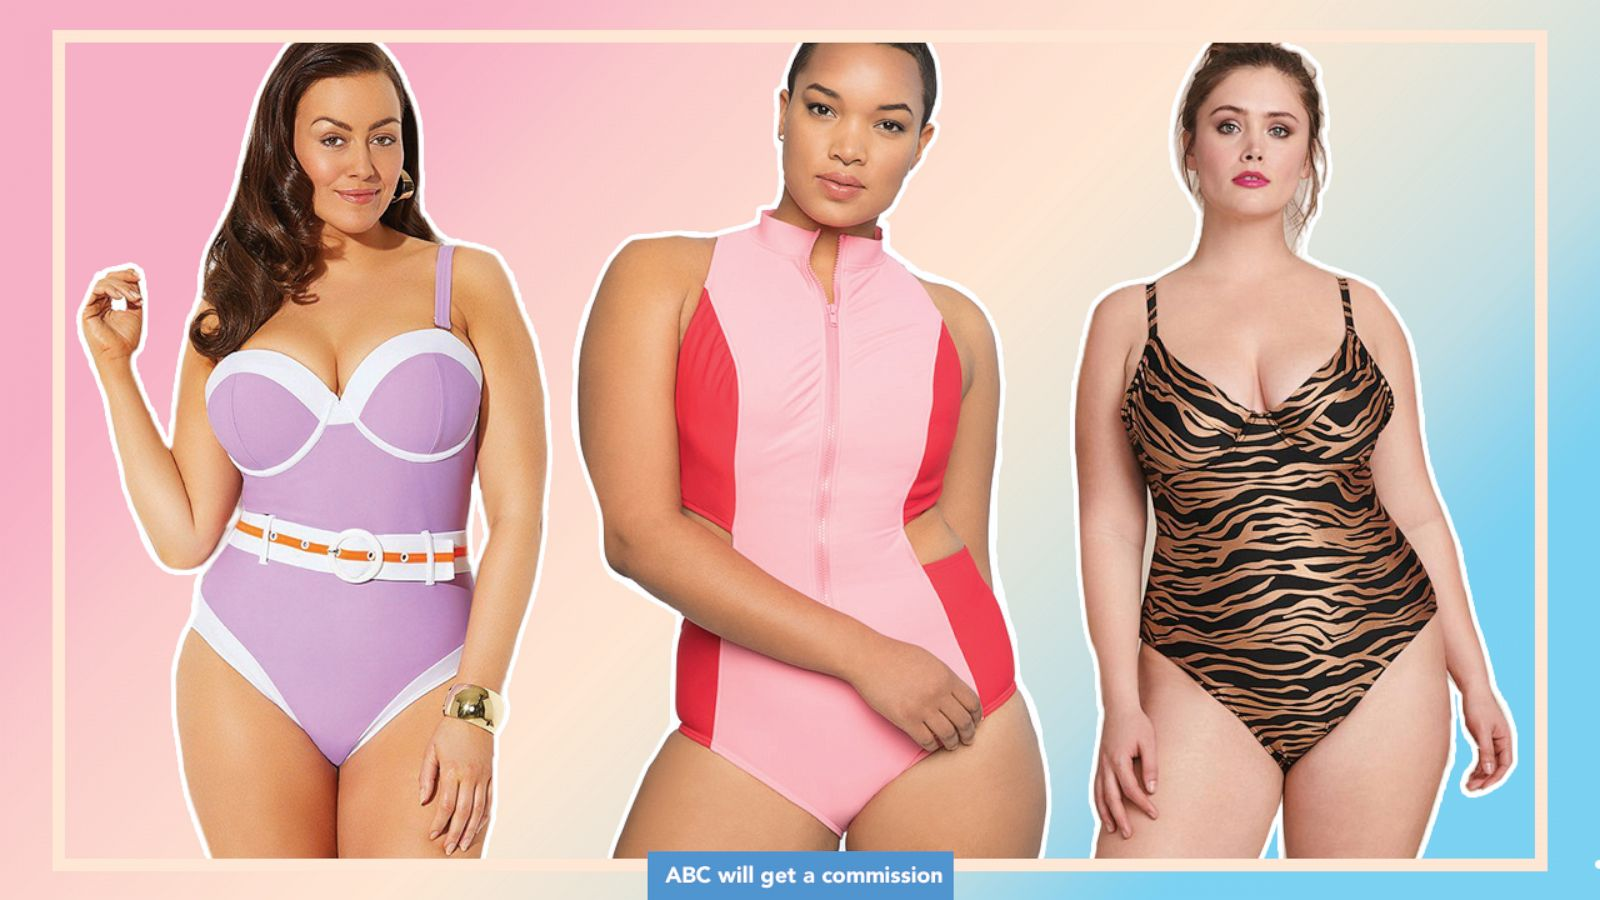 3465d7cb250 2019 swimsuit trends: Check out 9 flattering picks for women with curves